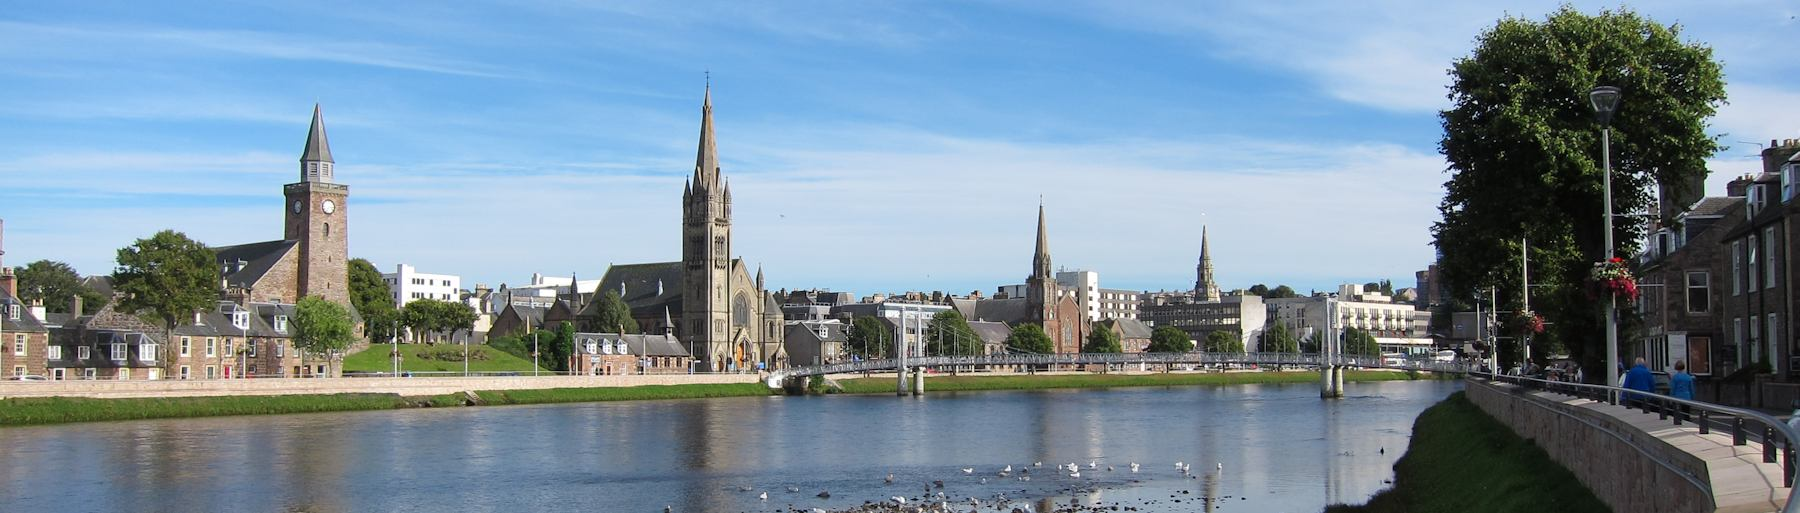 Inverness and the River Ness